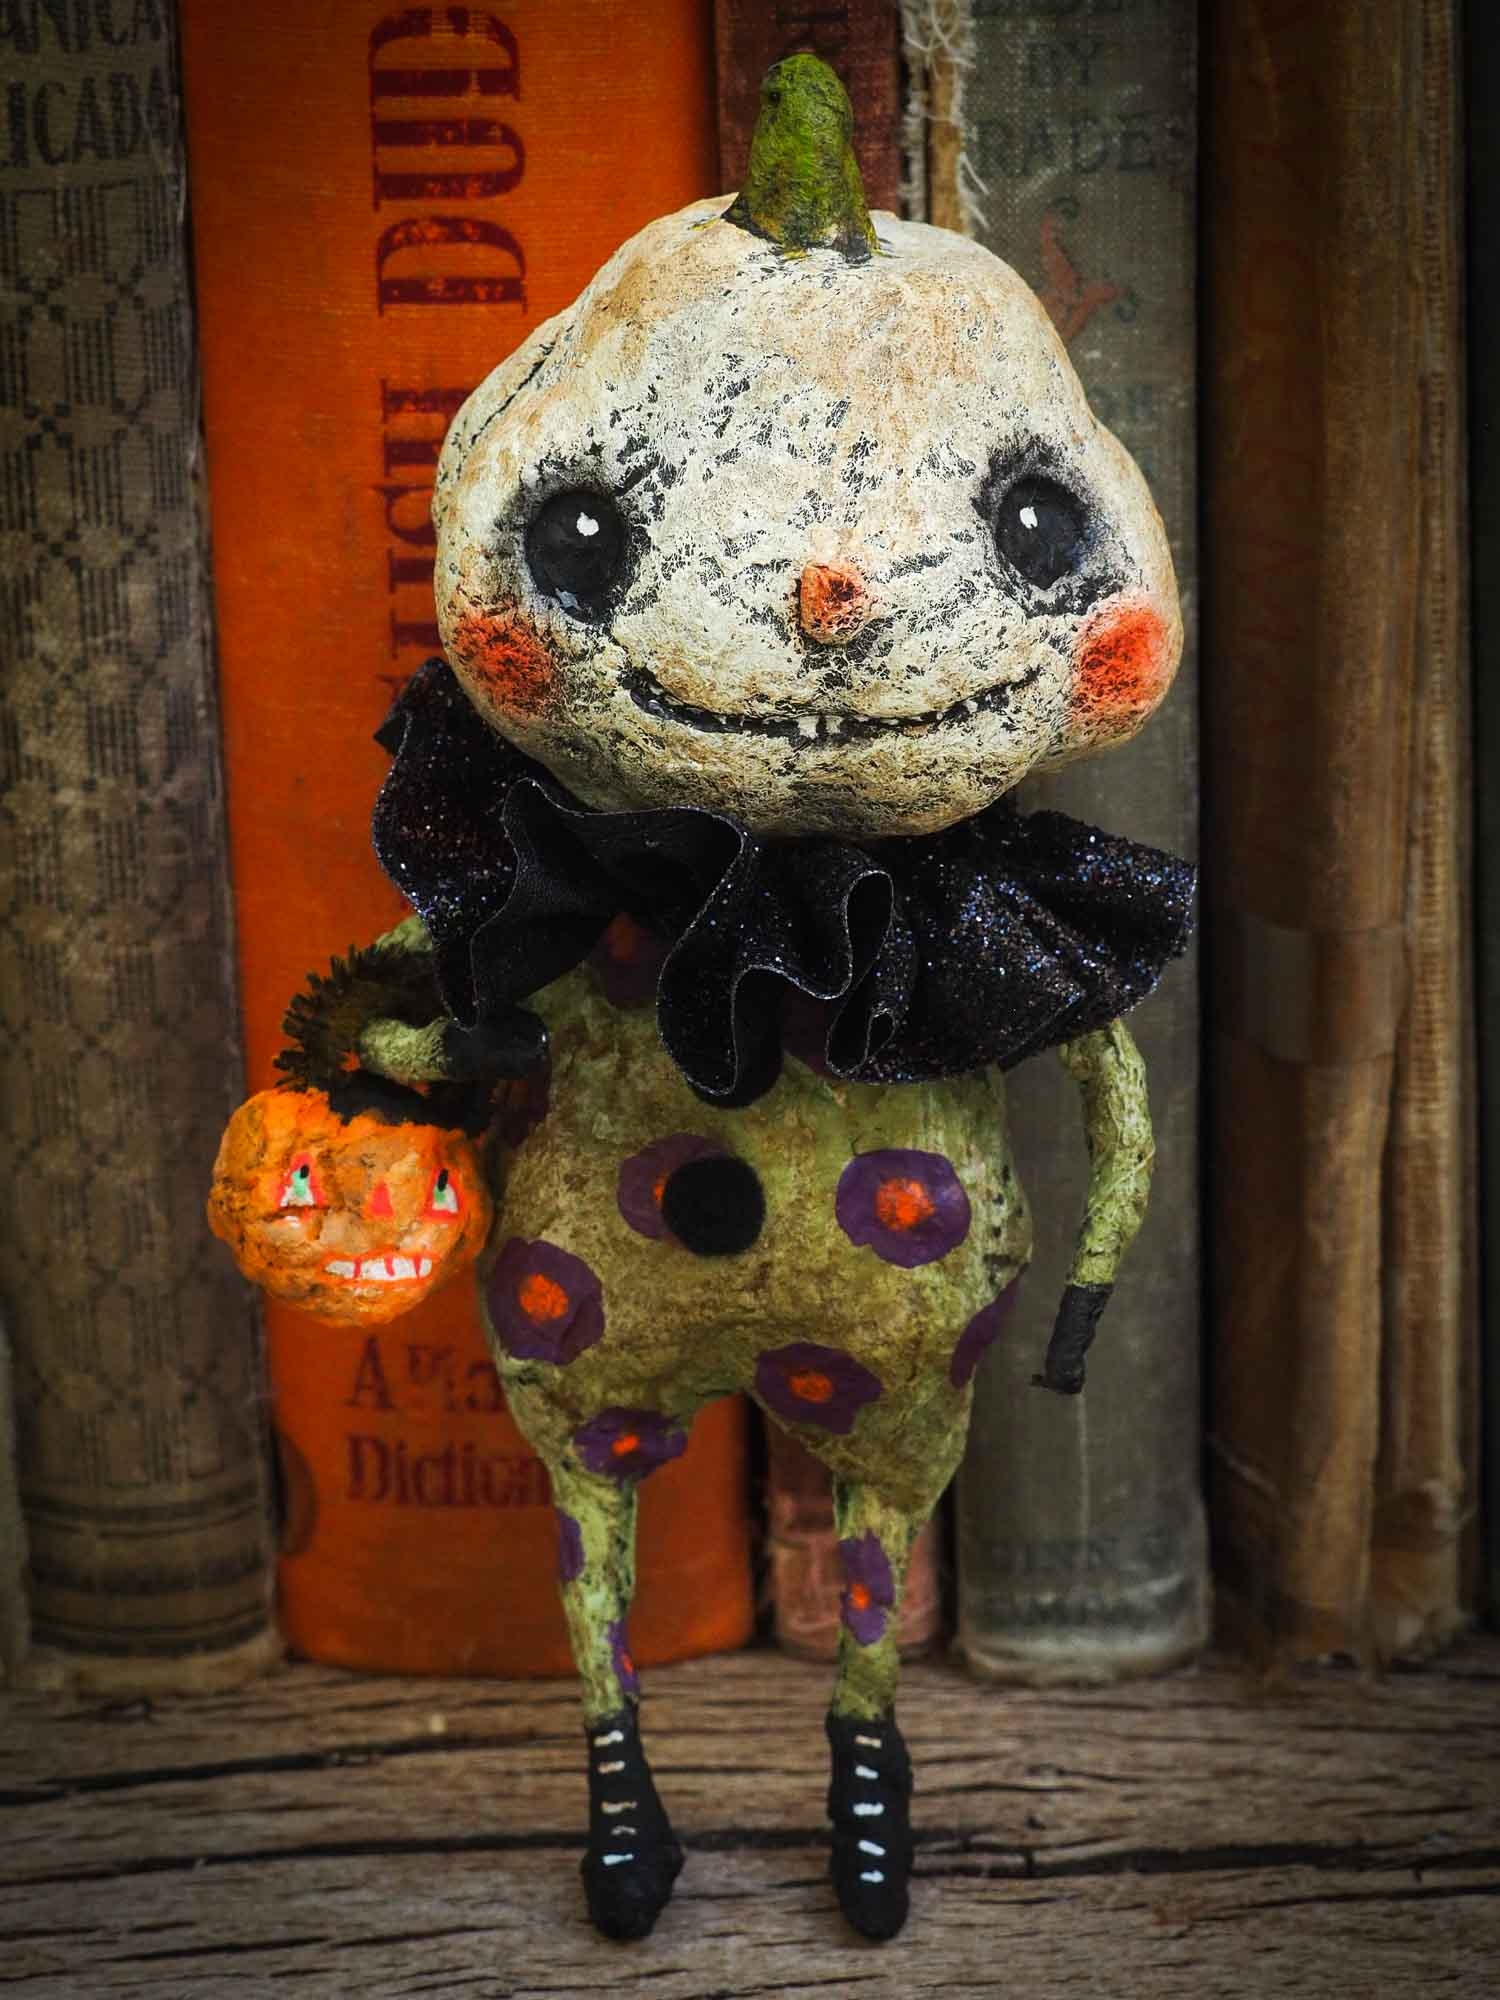 pumpkin jack-o-lantern ornament Halloween decoration. Danita art original handmade art doll pumpkin made with spun cotton from collection of witches, ghosts, skeletons, jack-o-lantern, pumpkin, vampire, ghouls and other whimsical folk art style home decor.